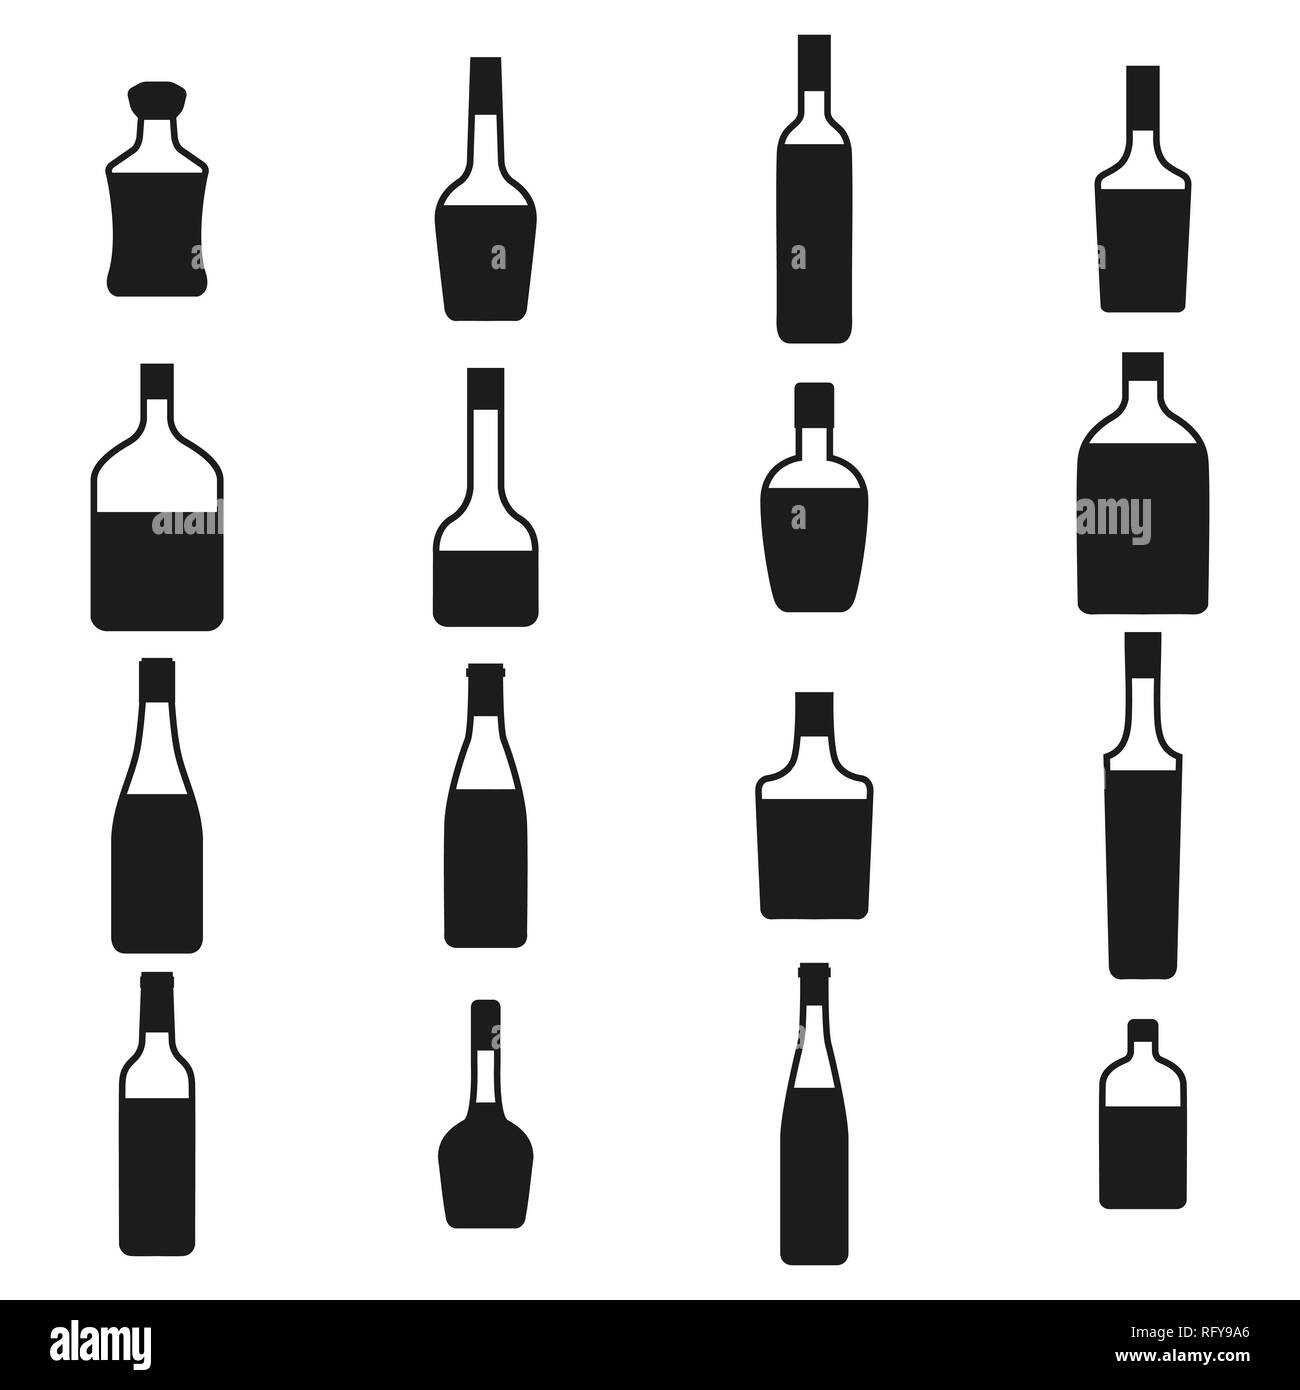 Alcohol bottles icons set. Black silhouettes on a white background, vector illustration. - Stock Vector